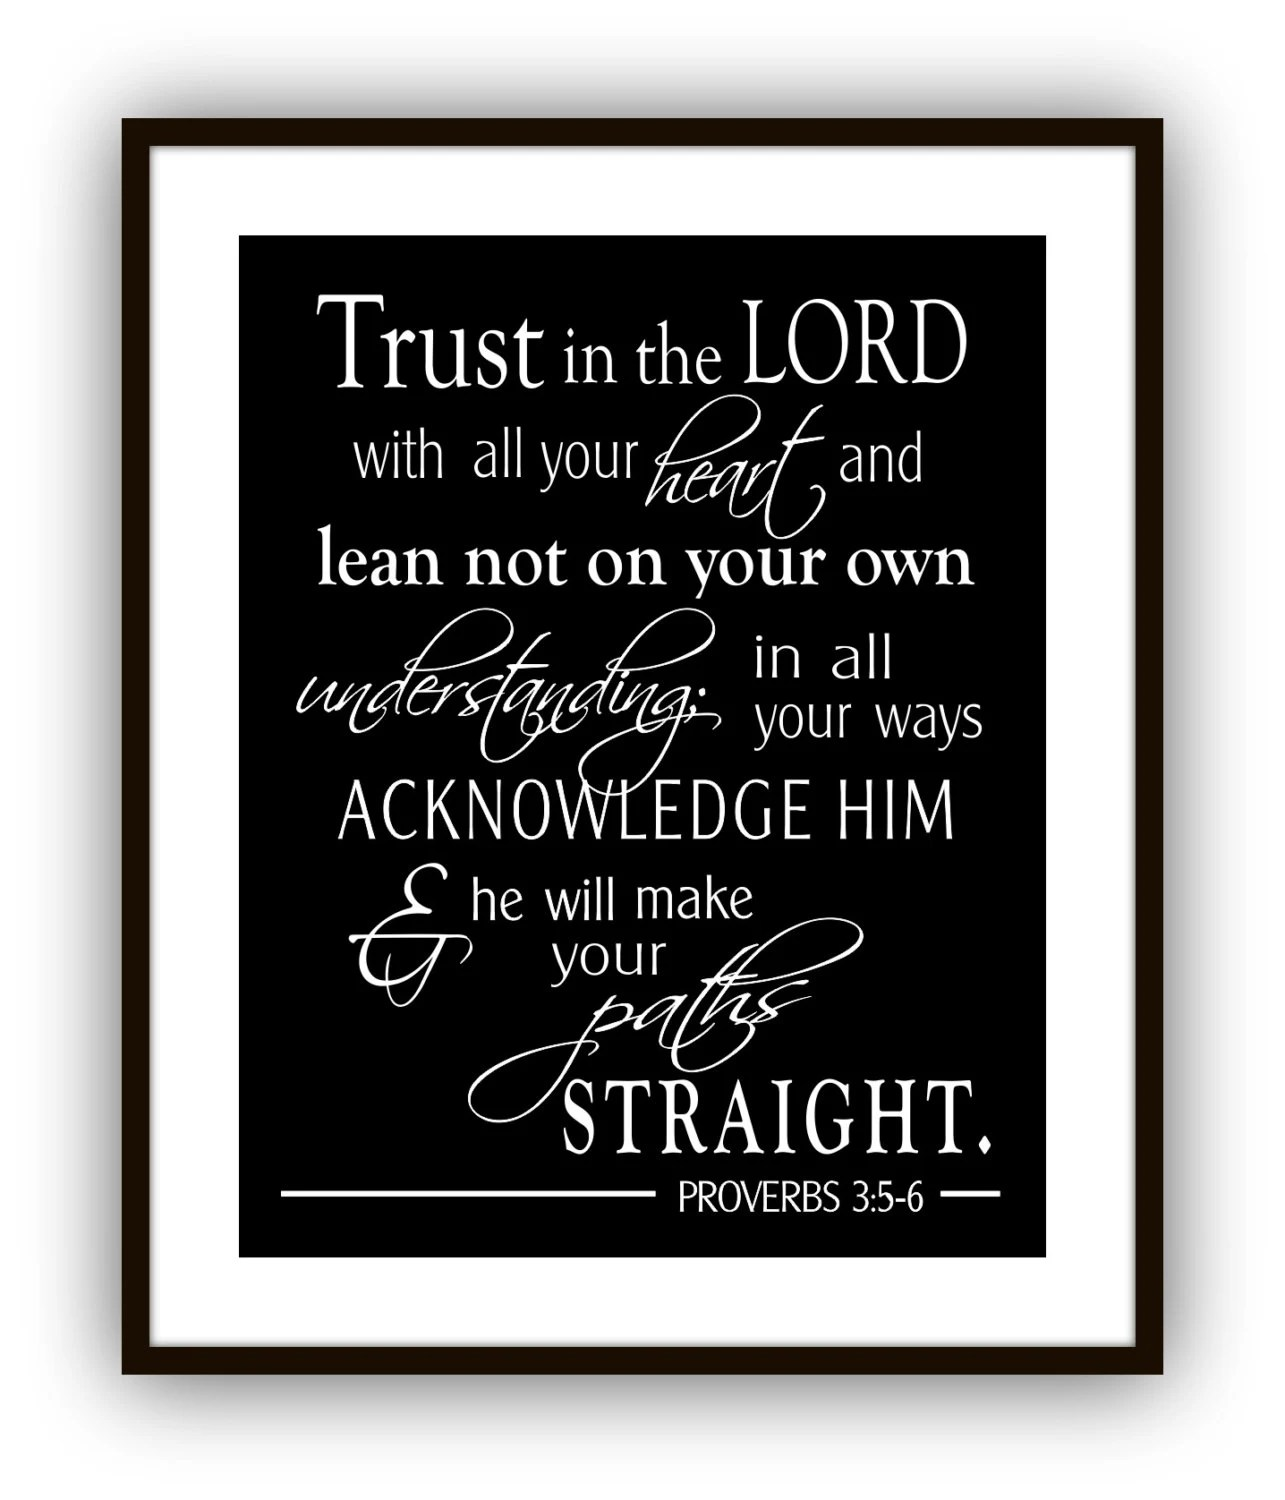 Proverbs 3 5 6 Trust In The Lord With All Your Heart